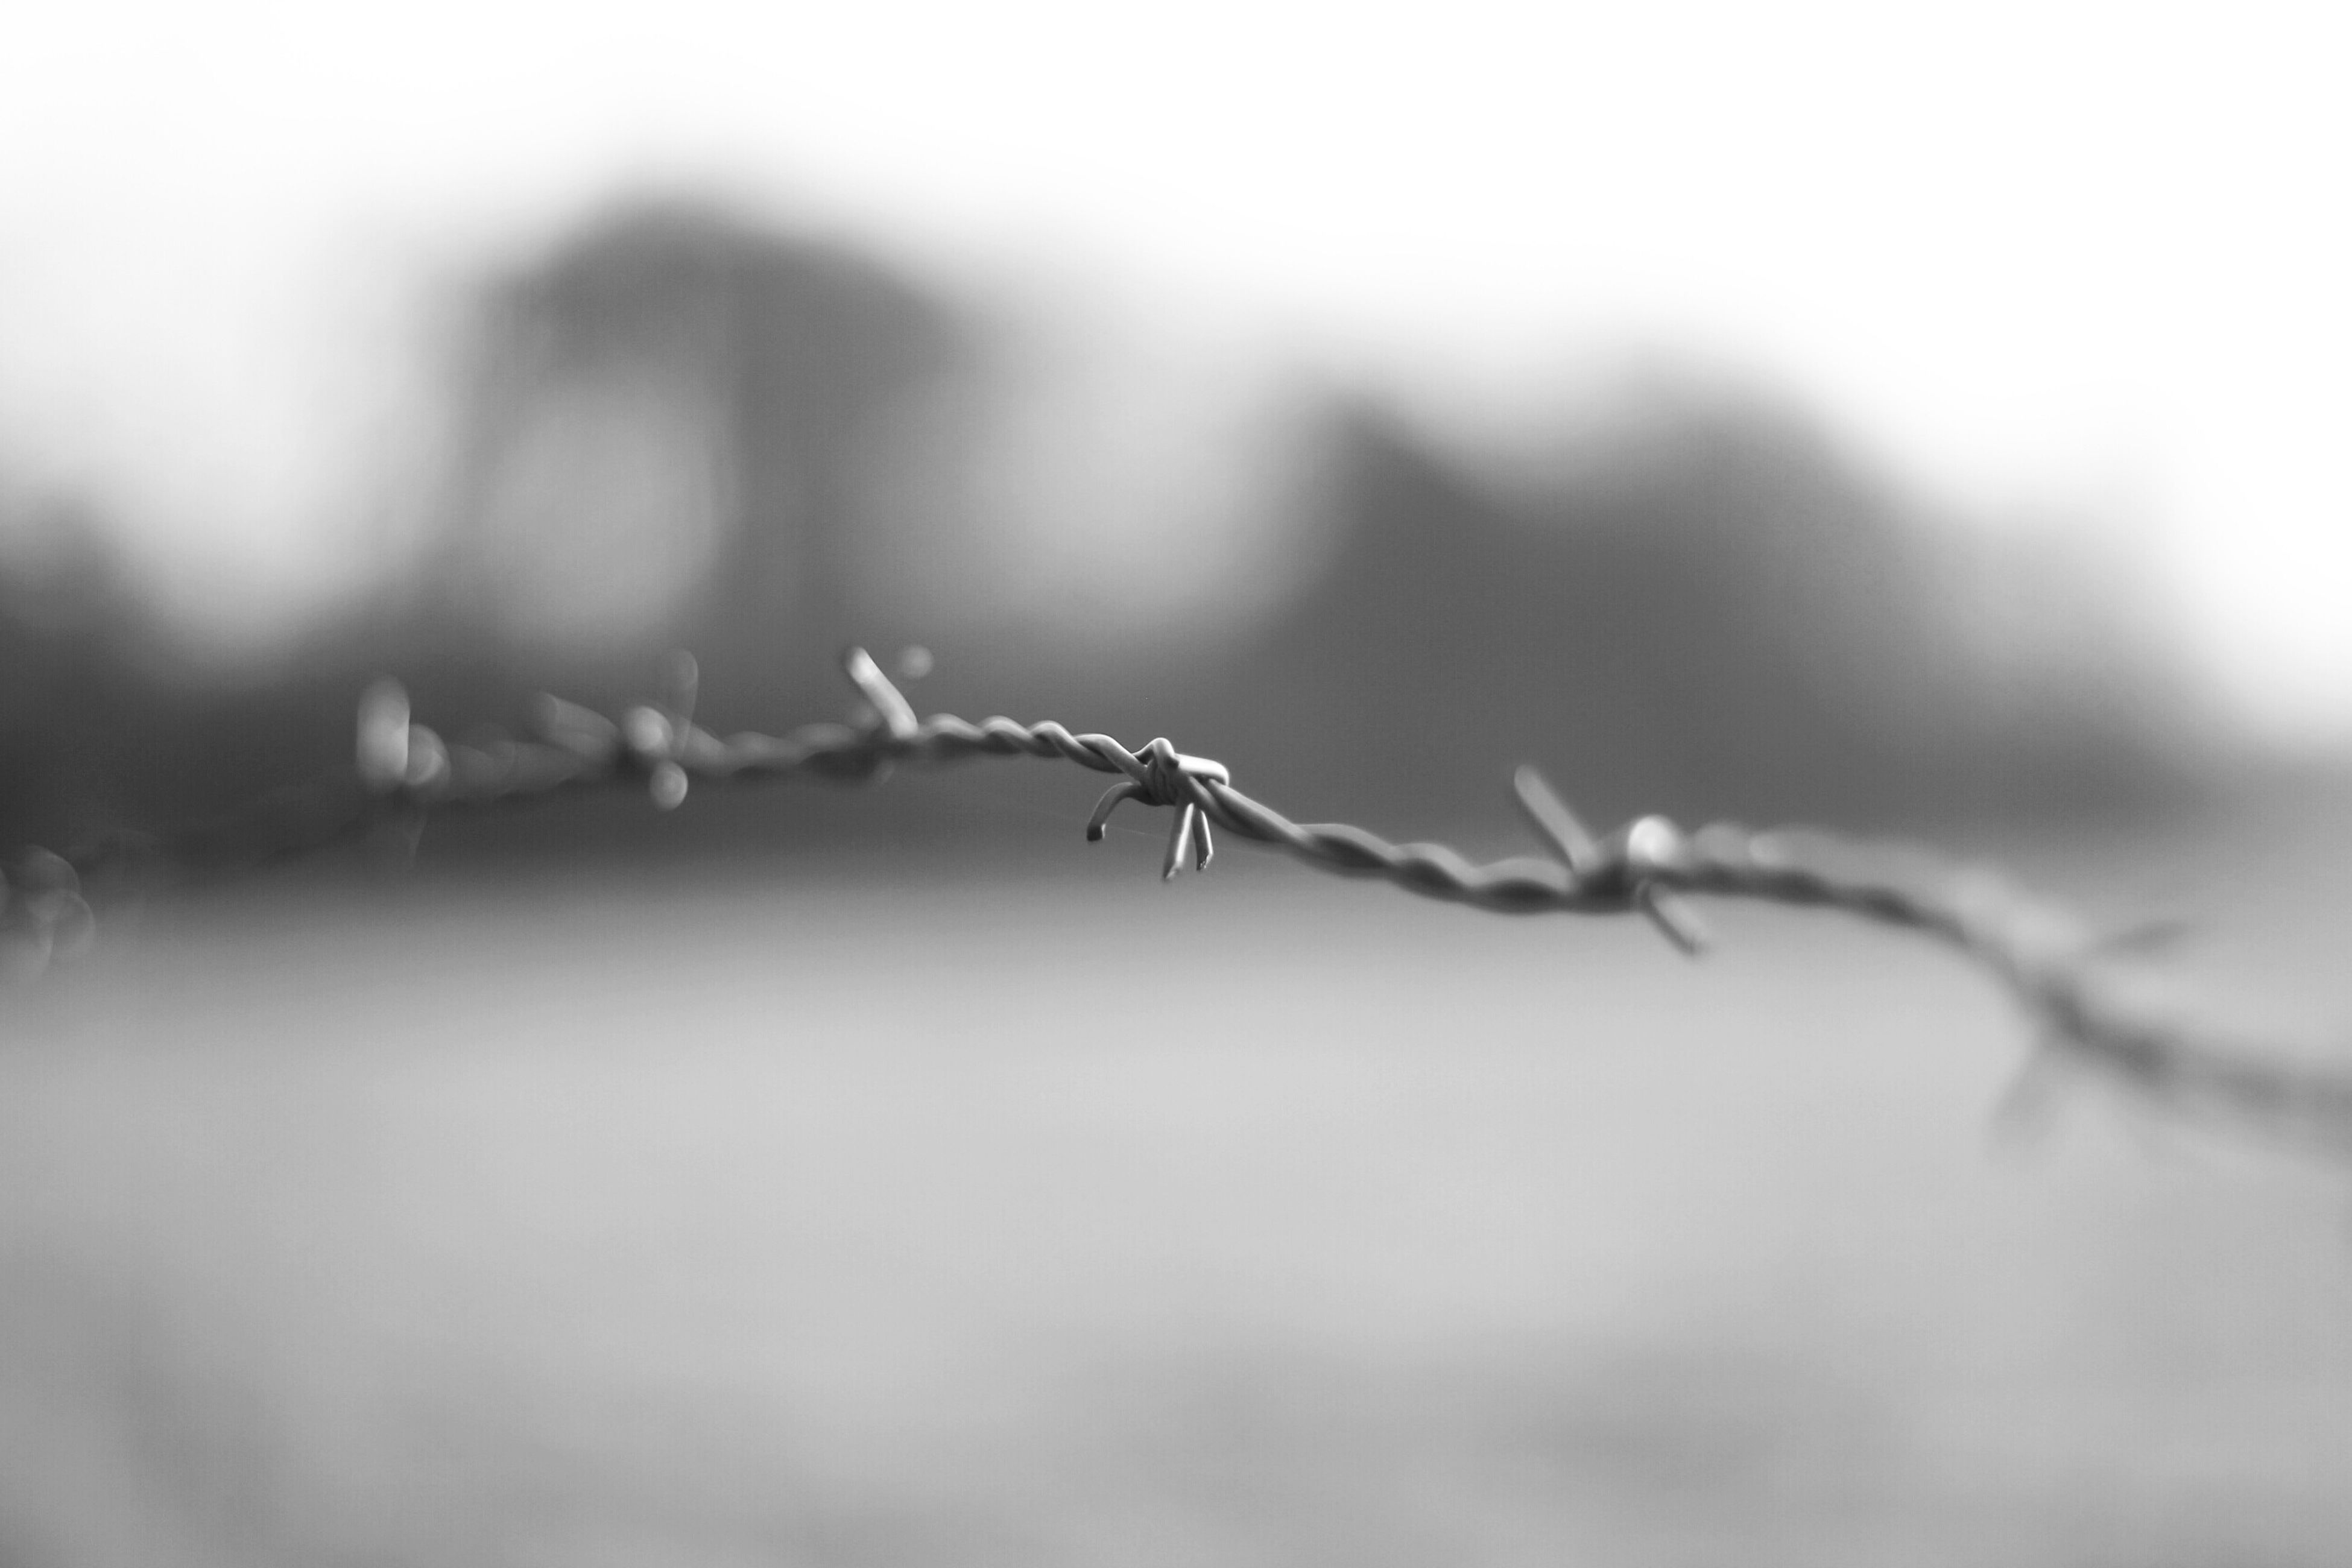 focus on foreground, close-up, barbed wire, twig, selective focus, nature, stem, outdoors, plant, day, insect, no people, fence, protection, safety, spider web, animal themes, branch, sharp, tranquility